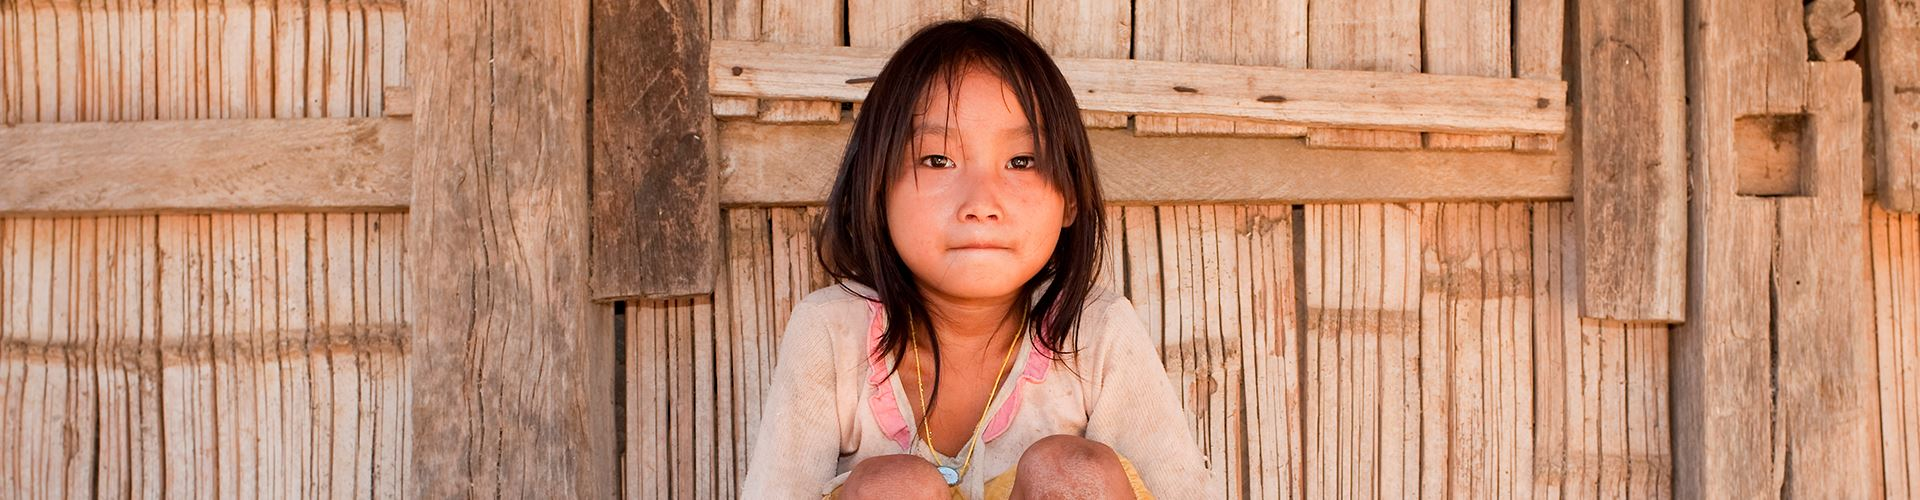 Asian-girl-Akha-before-timber-house,-Laos.jpg